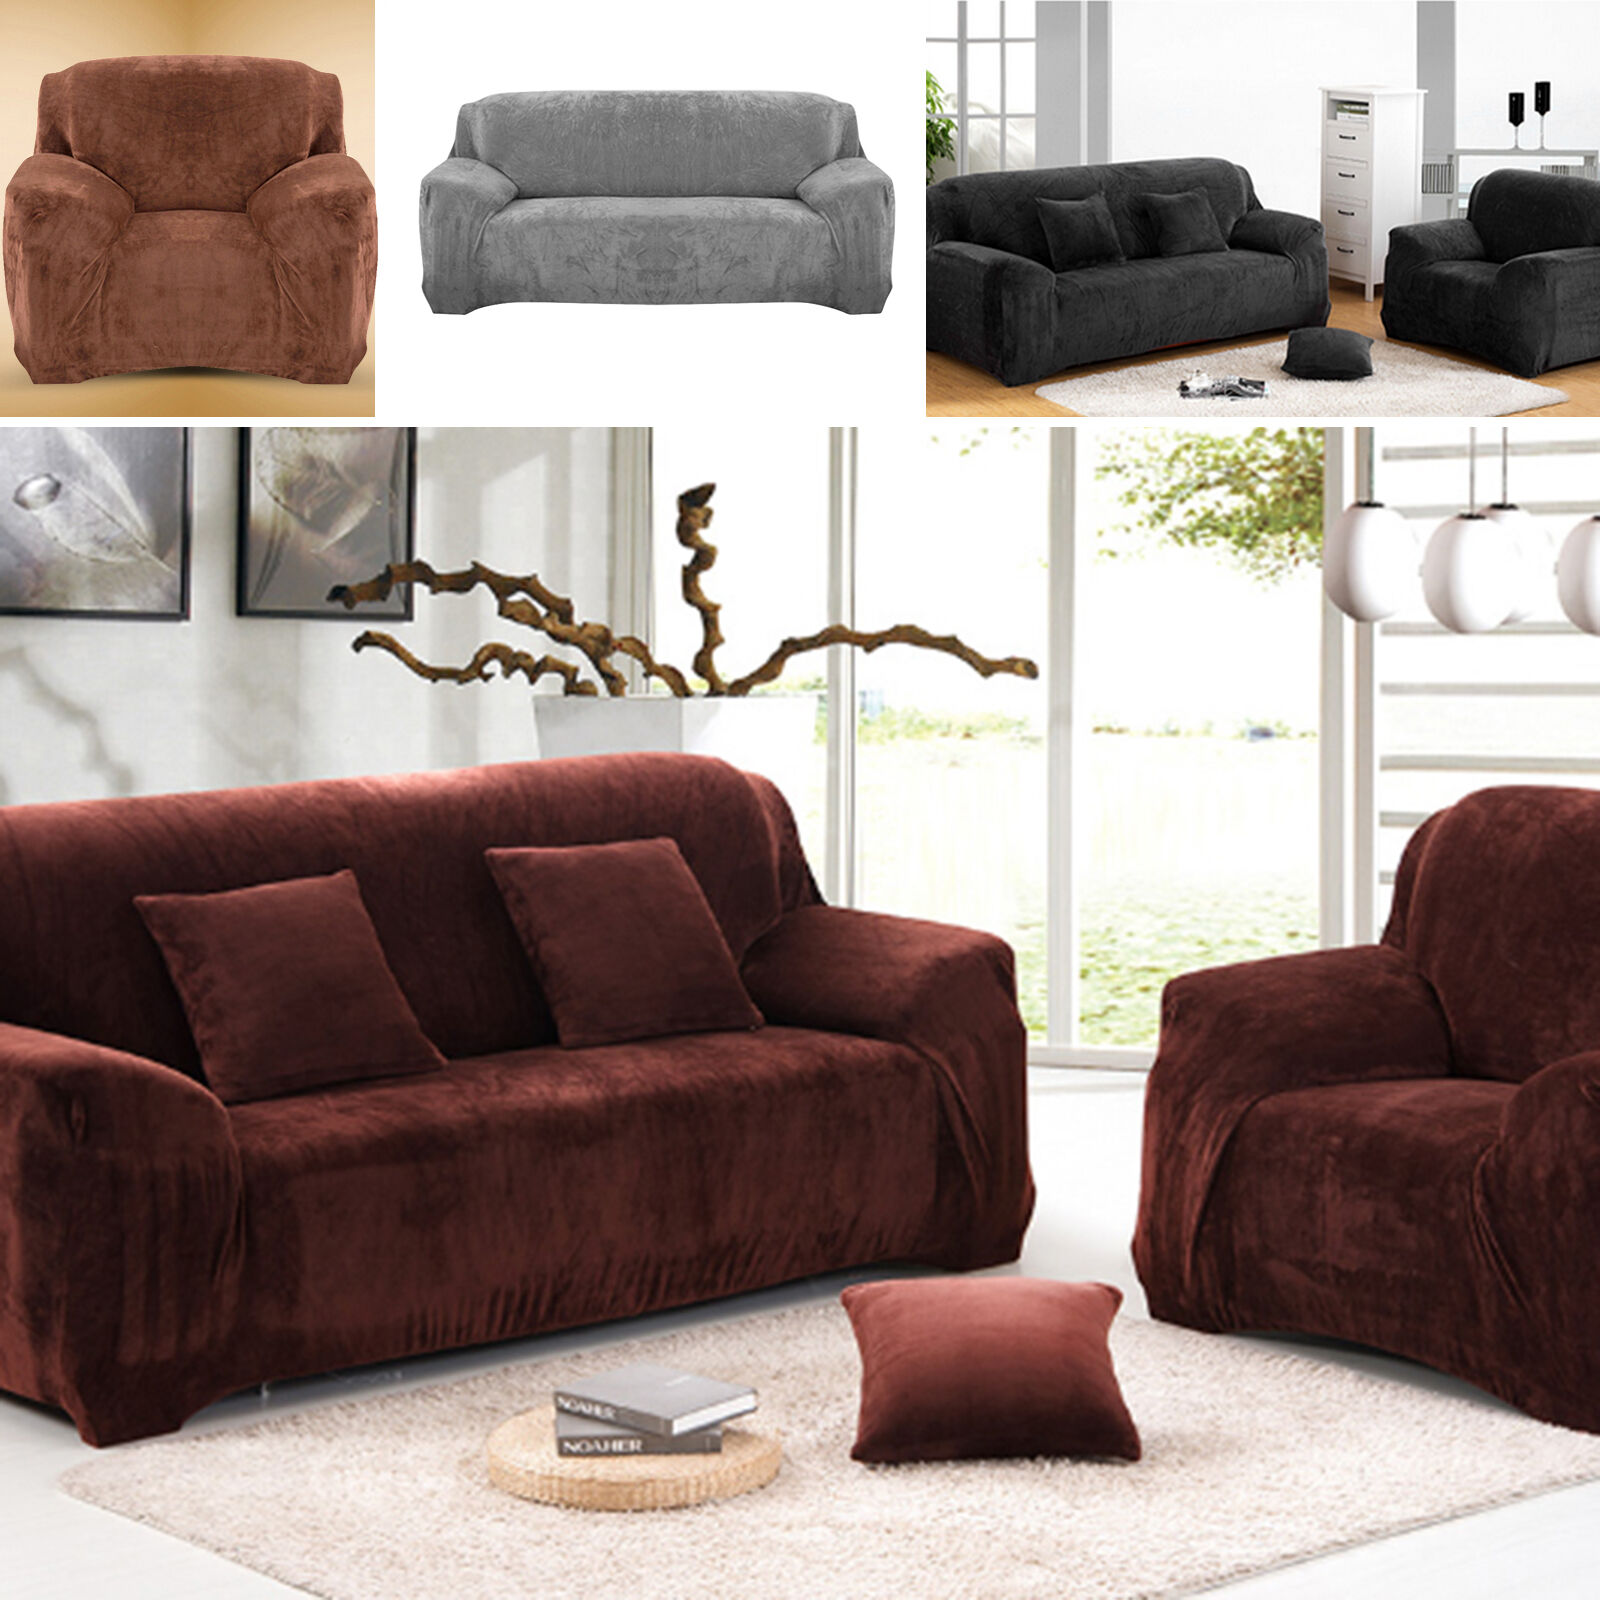 Stretch Fit Sofa Covers Uk Image Fatare